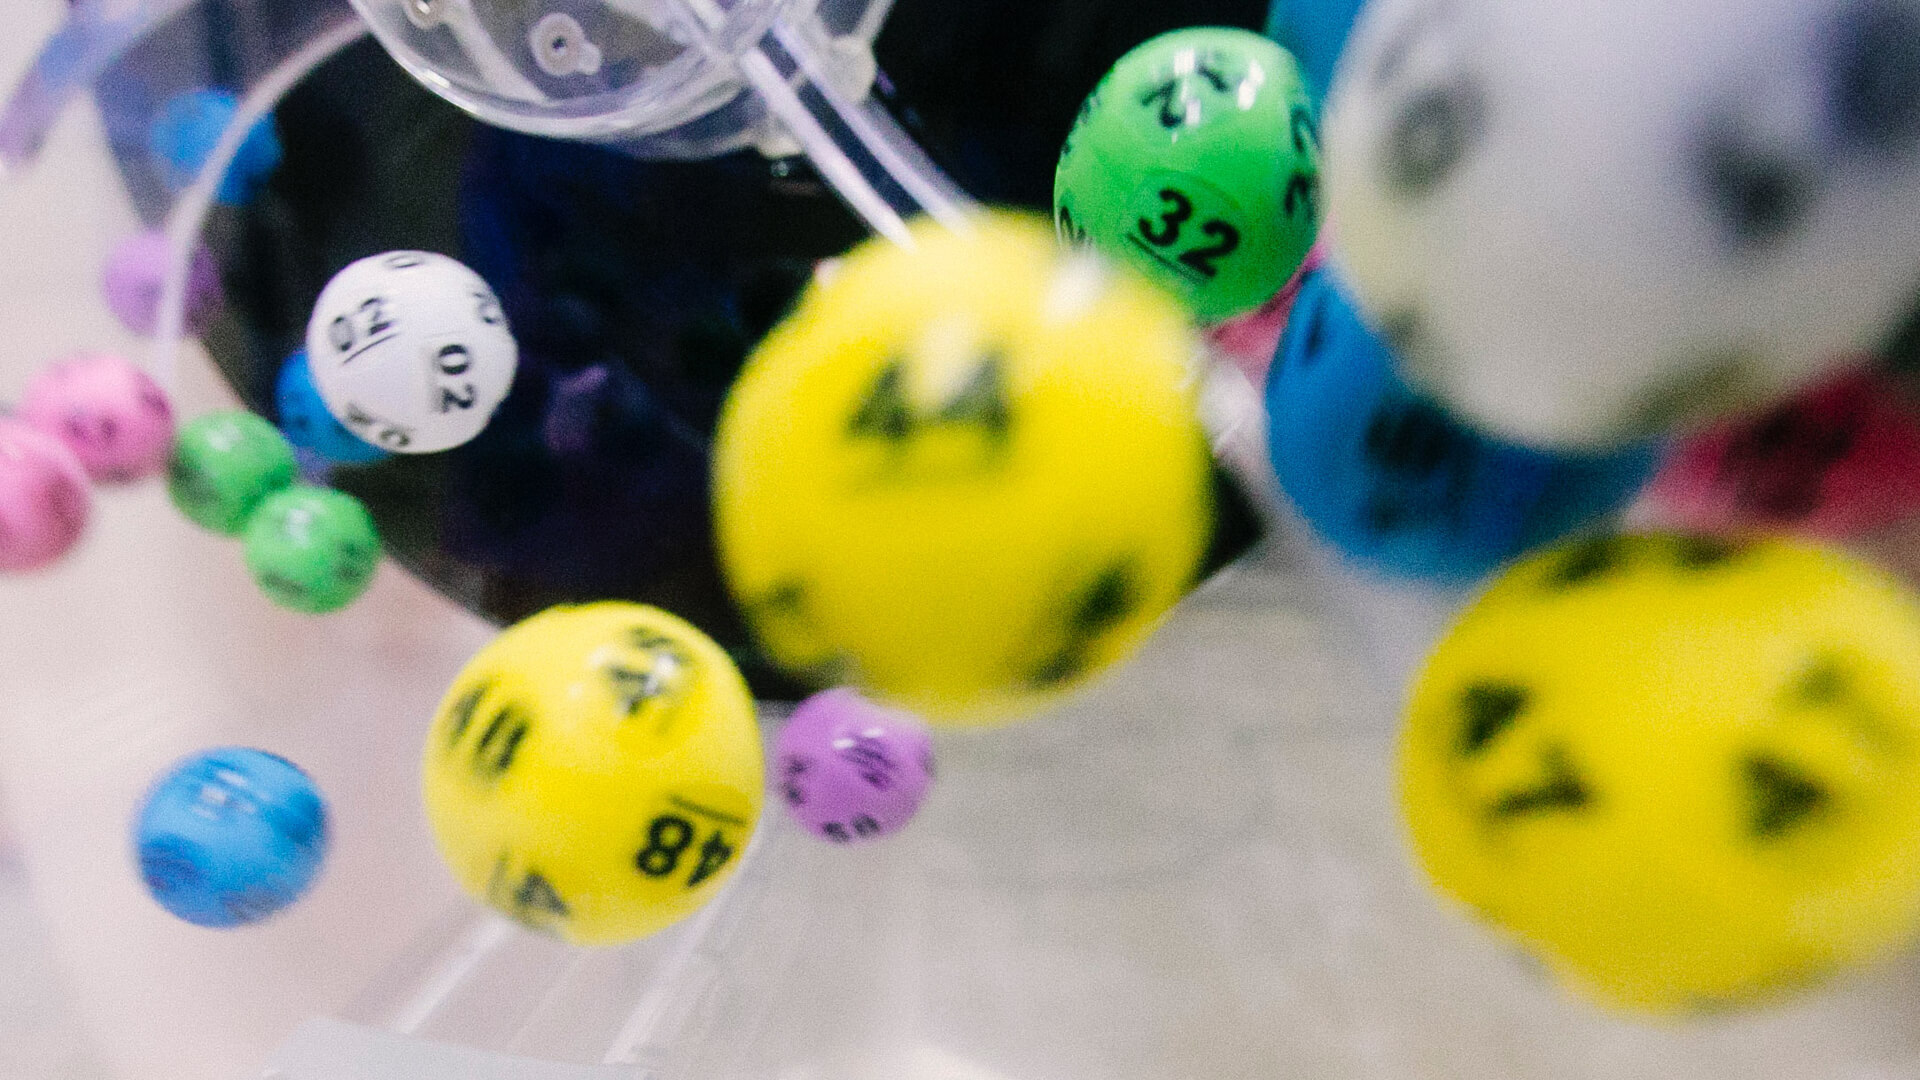 The $625M Powerball Winner's Lottery Tax Bill Will Be Massive